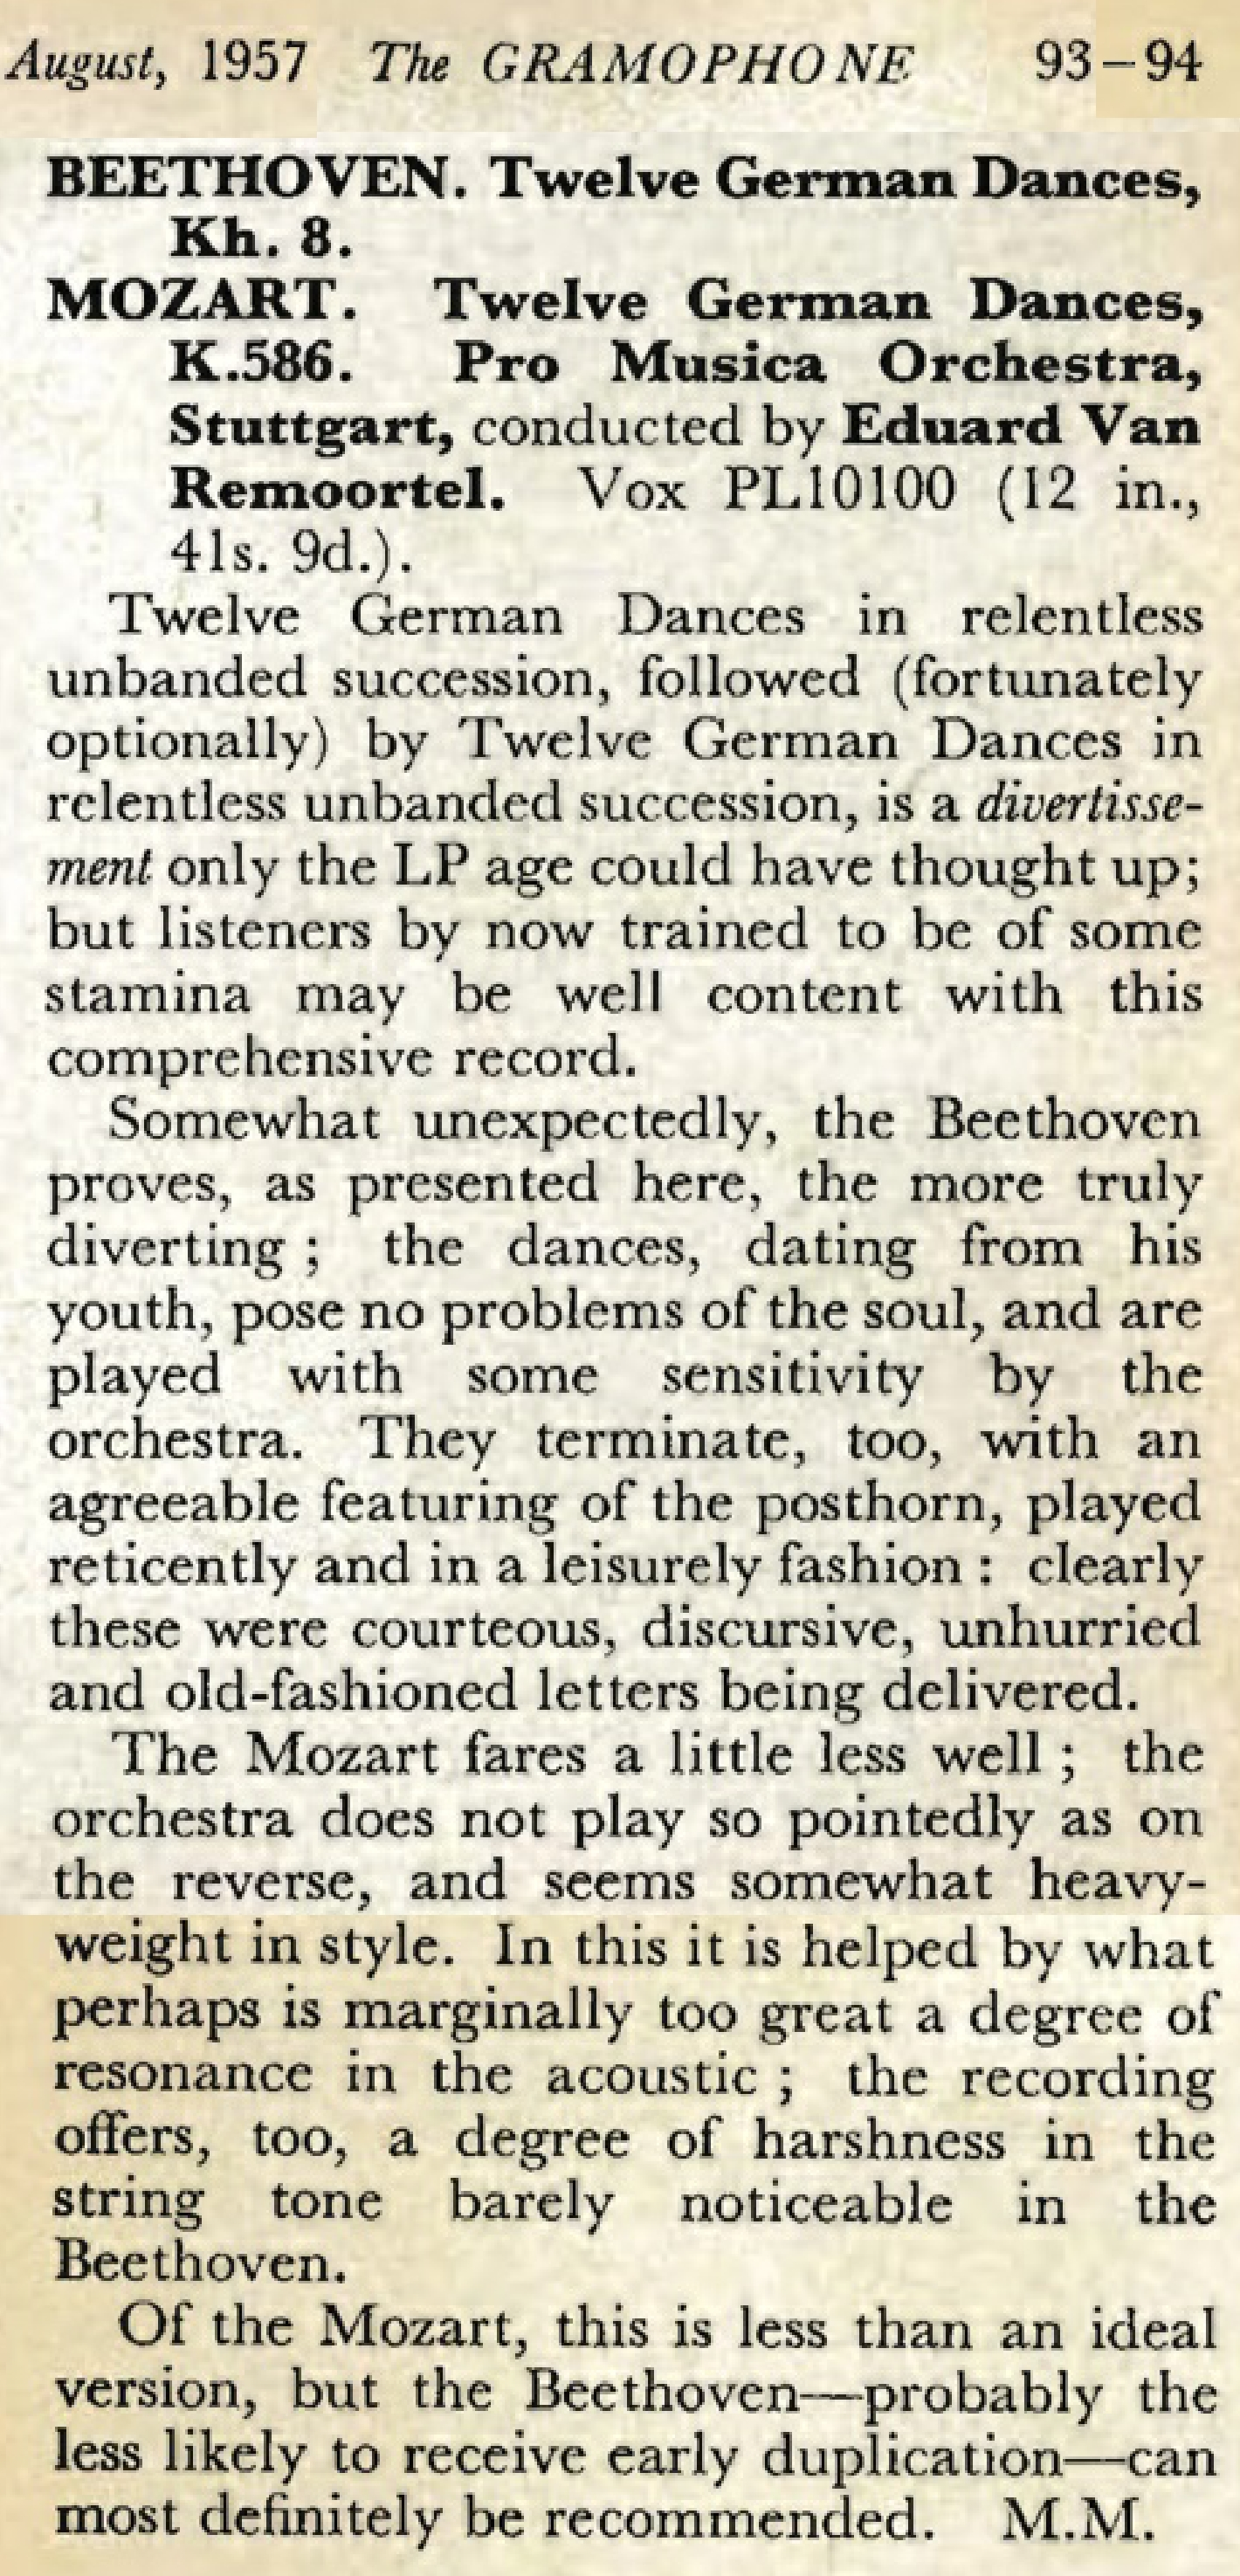 The Gramophone August 1957 pages 93 94